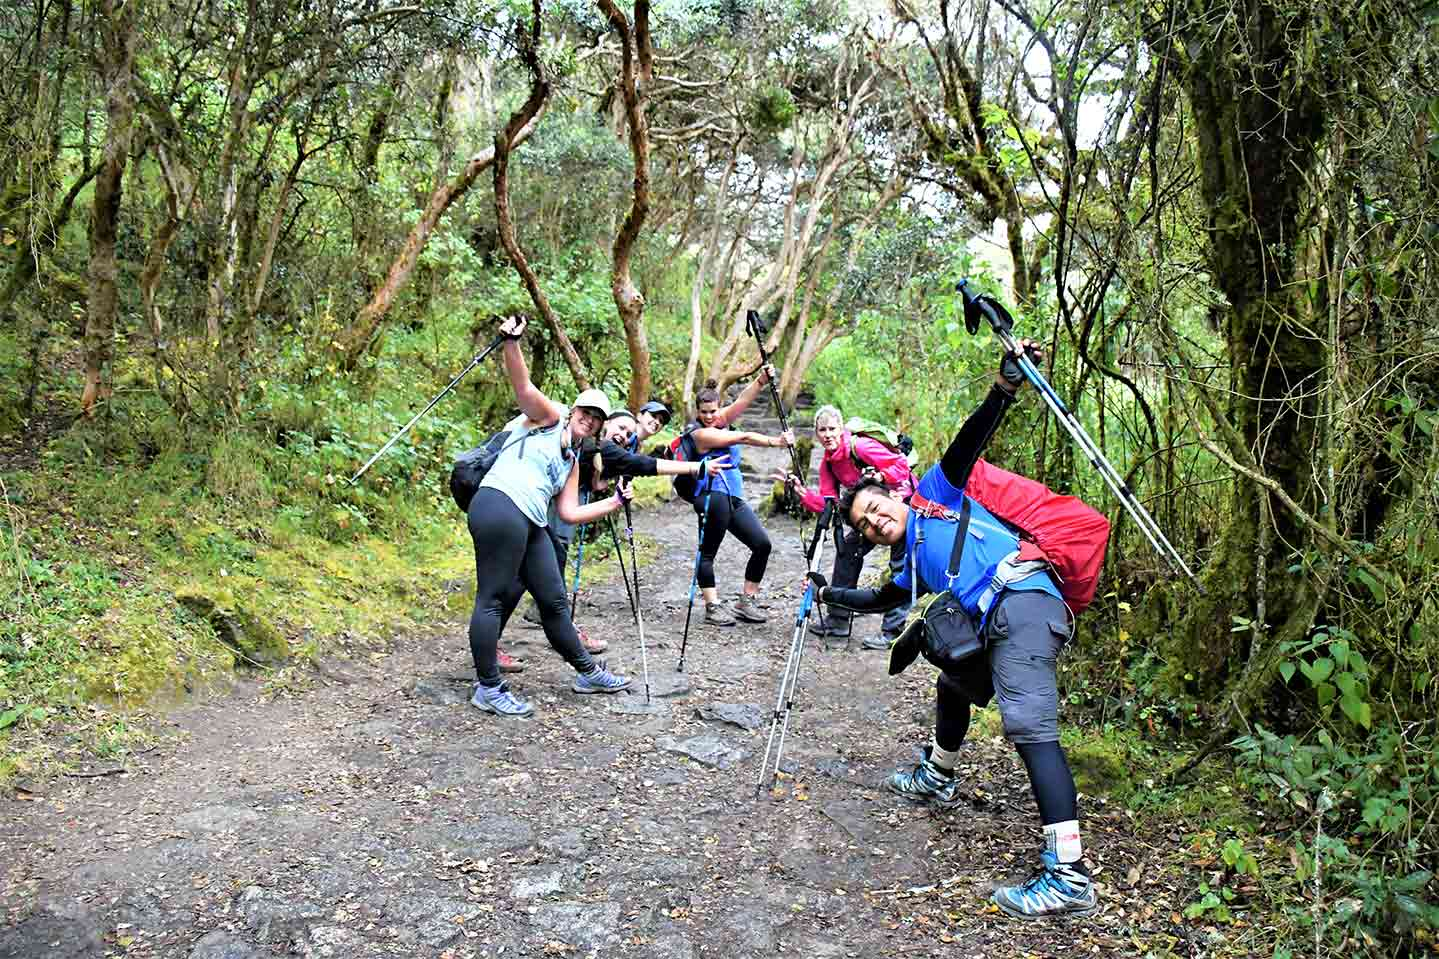 Inca Trail Hike Difficulty Personal Tips and Advice